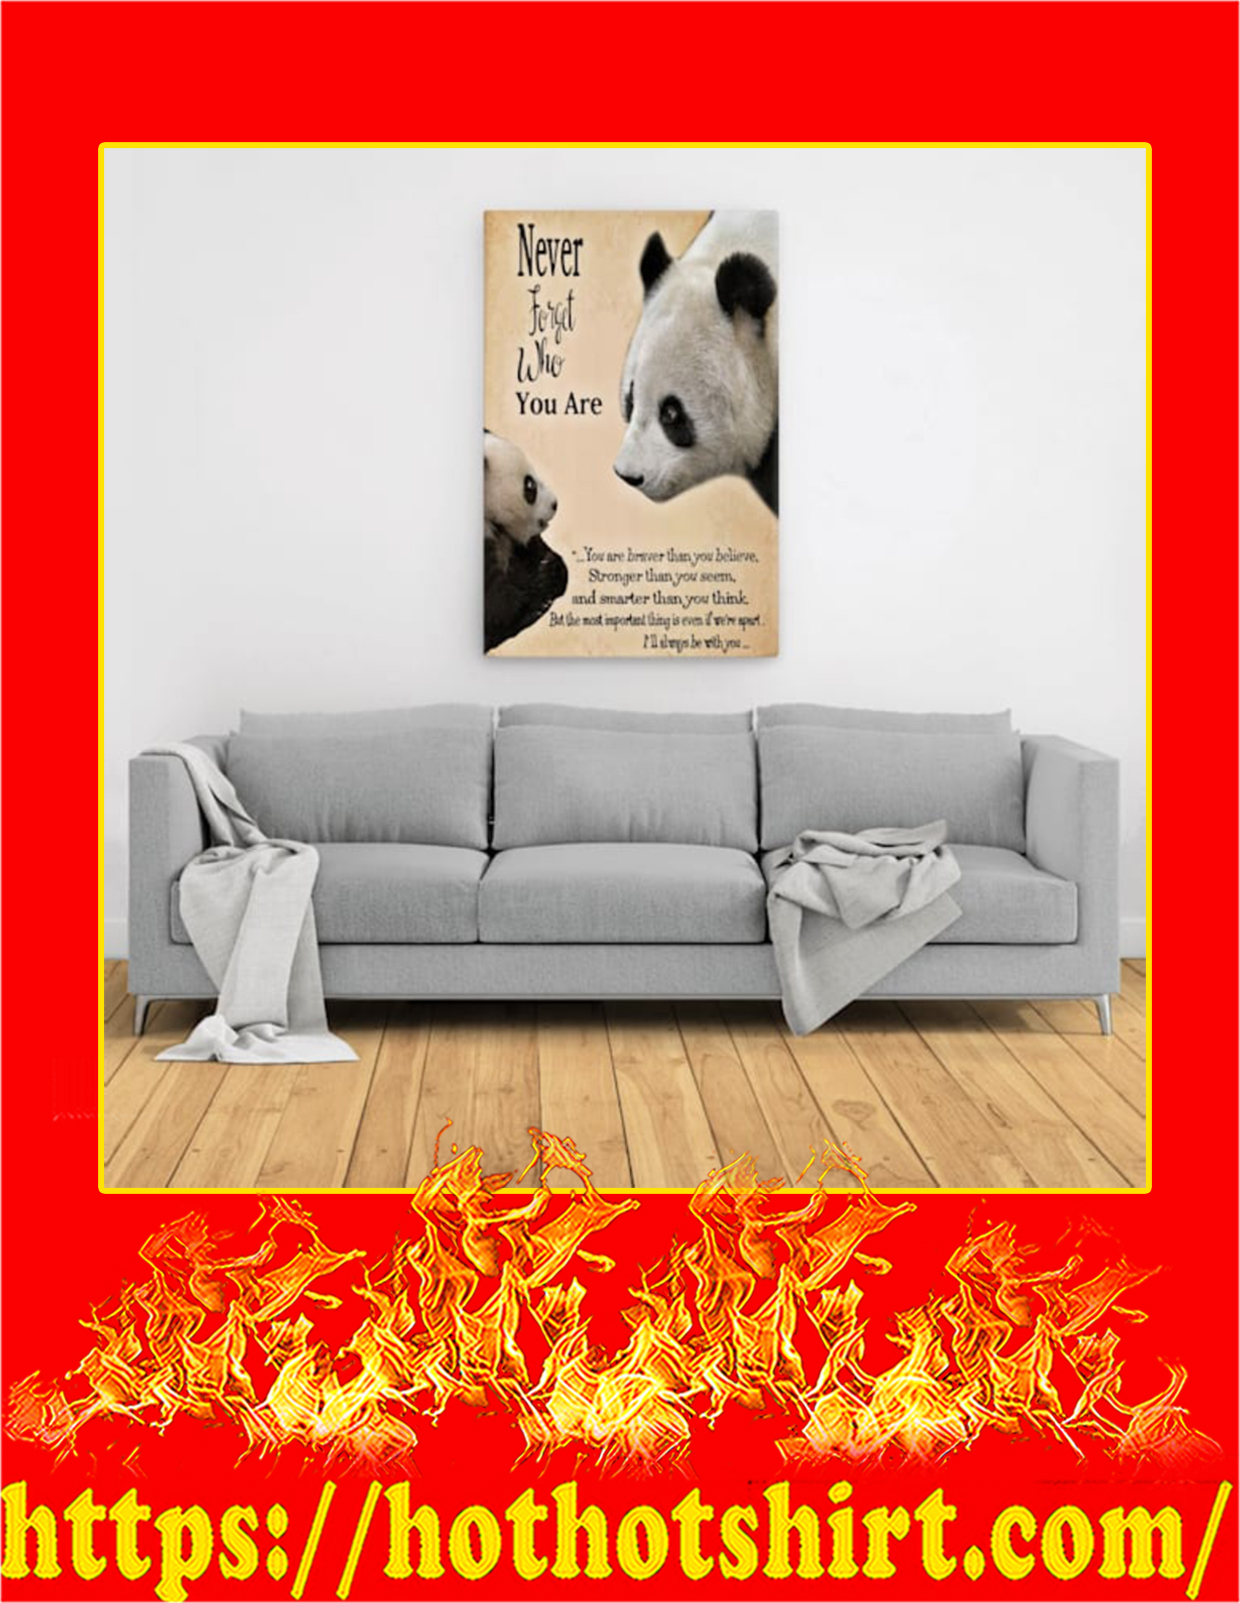 Panda never forget who you are canvas prints - Large